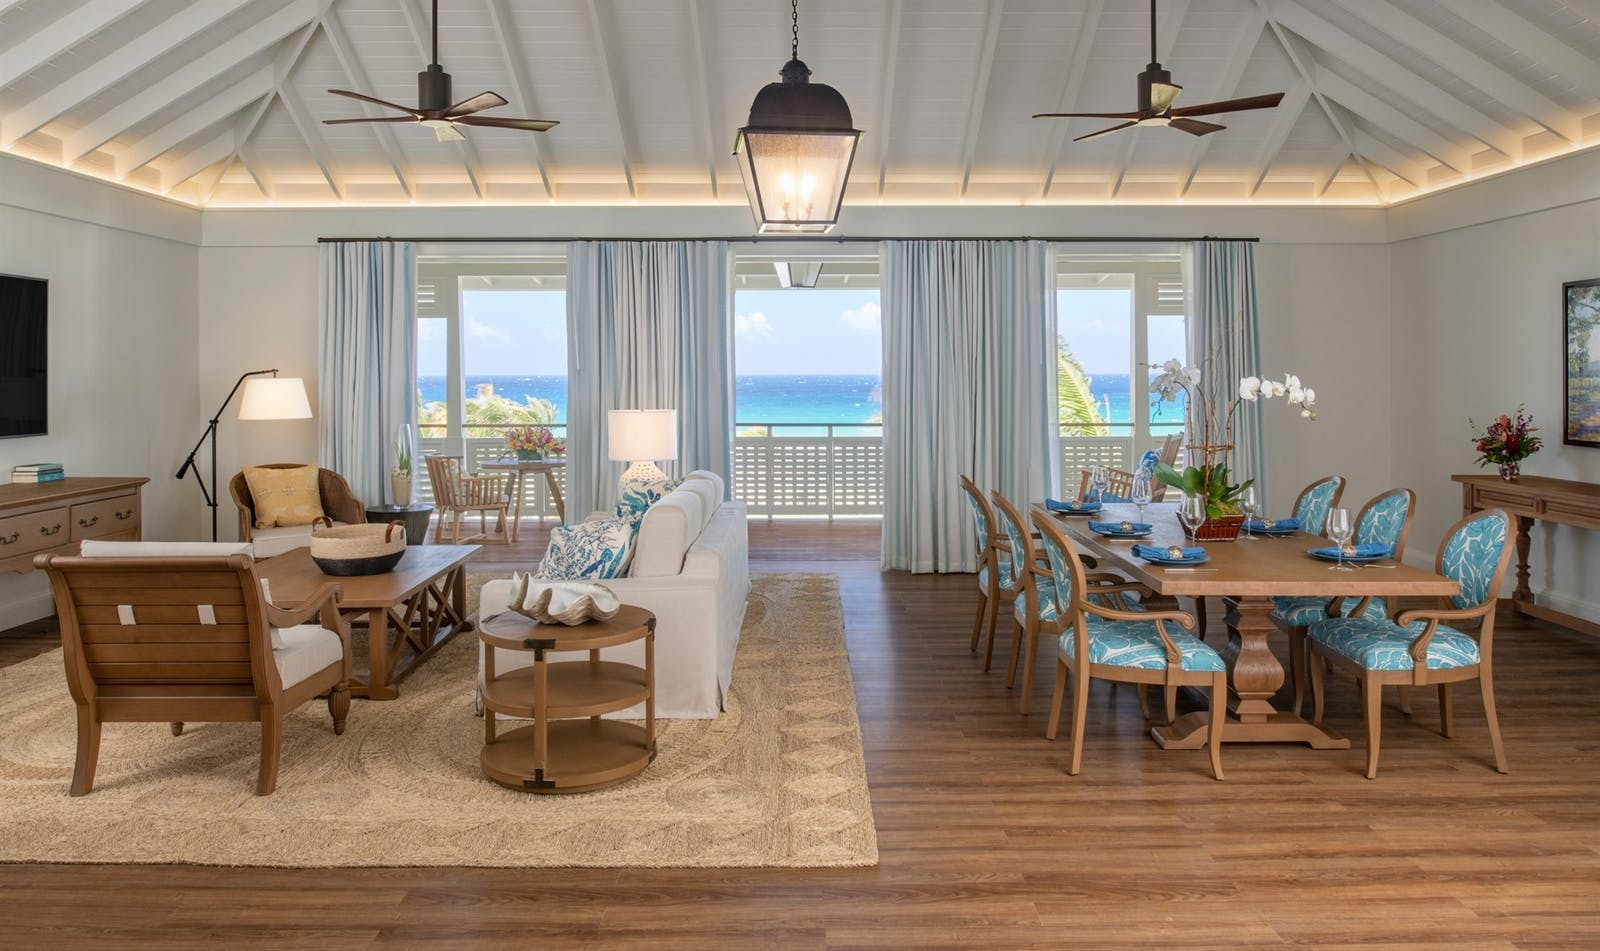 Great House Ocean Suite at Eclipse at Half Moon, Jamaica